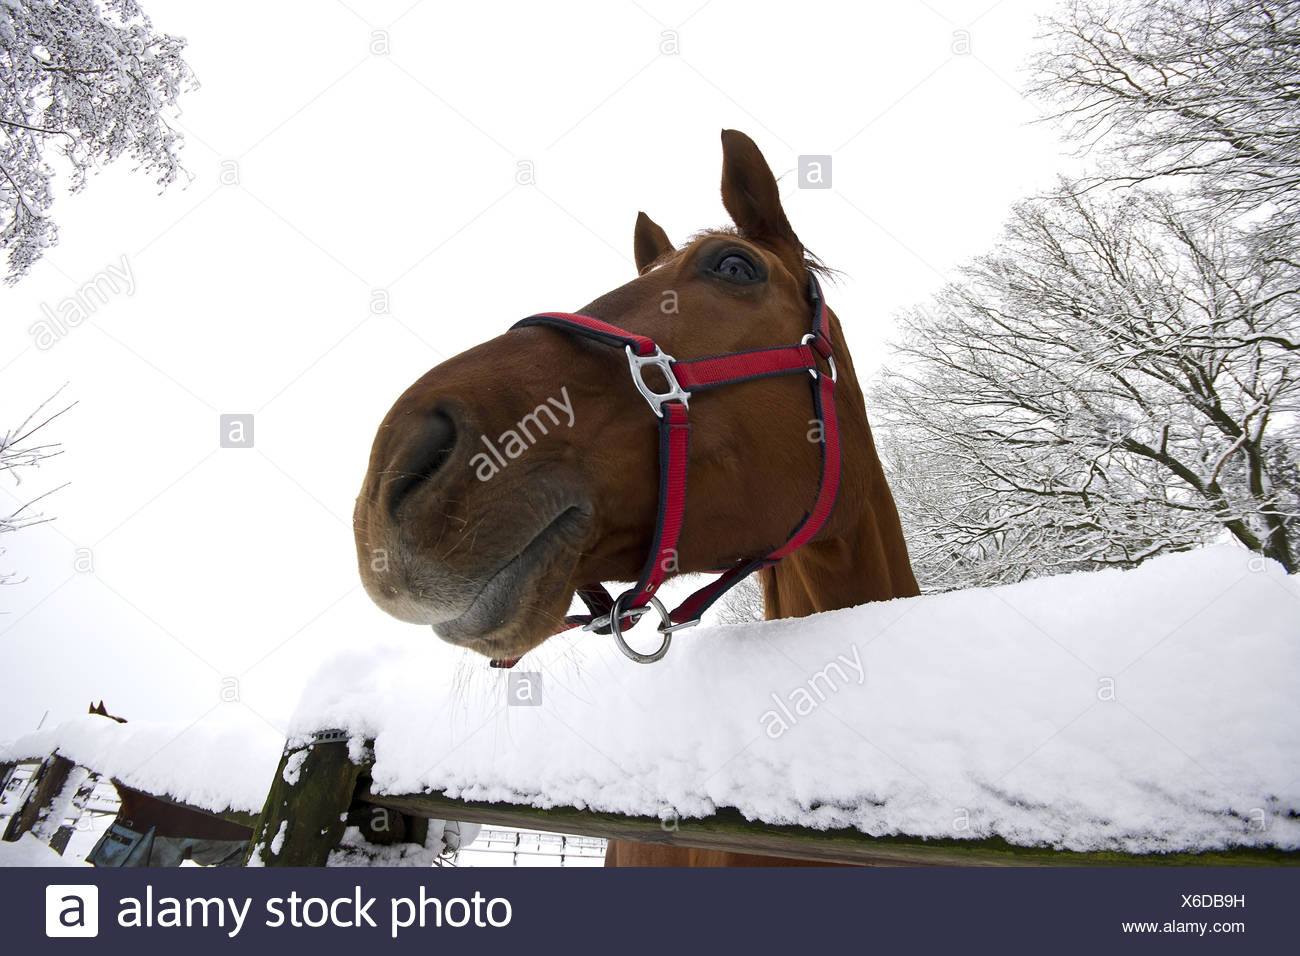 observant looking horse - Stock Image